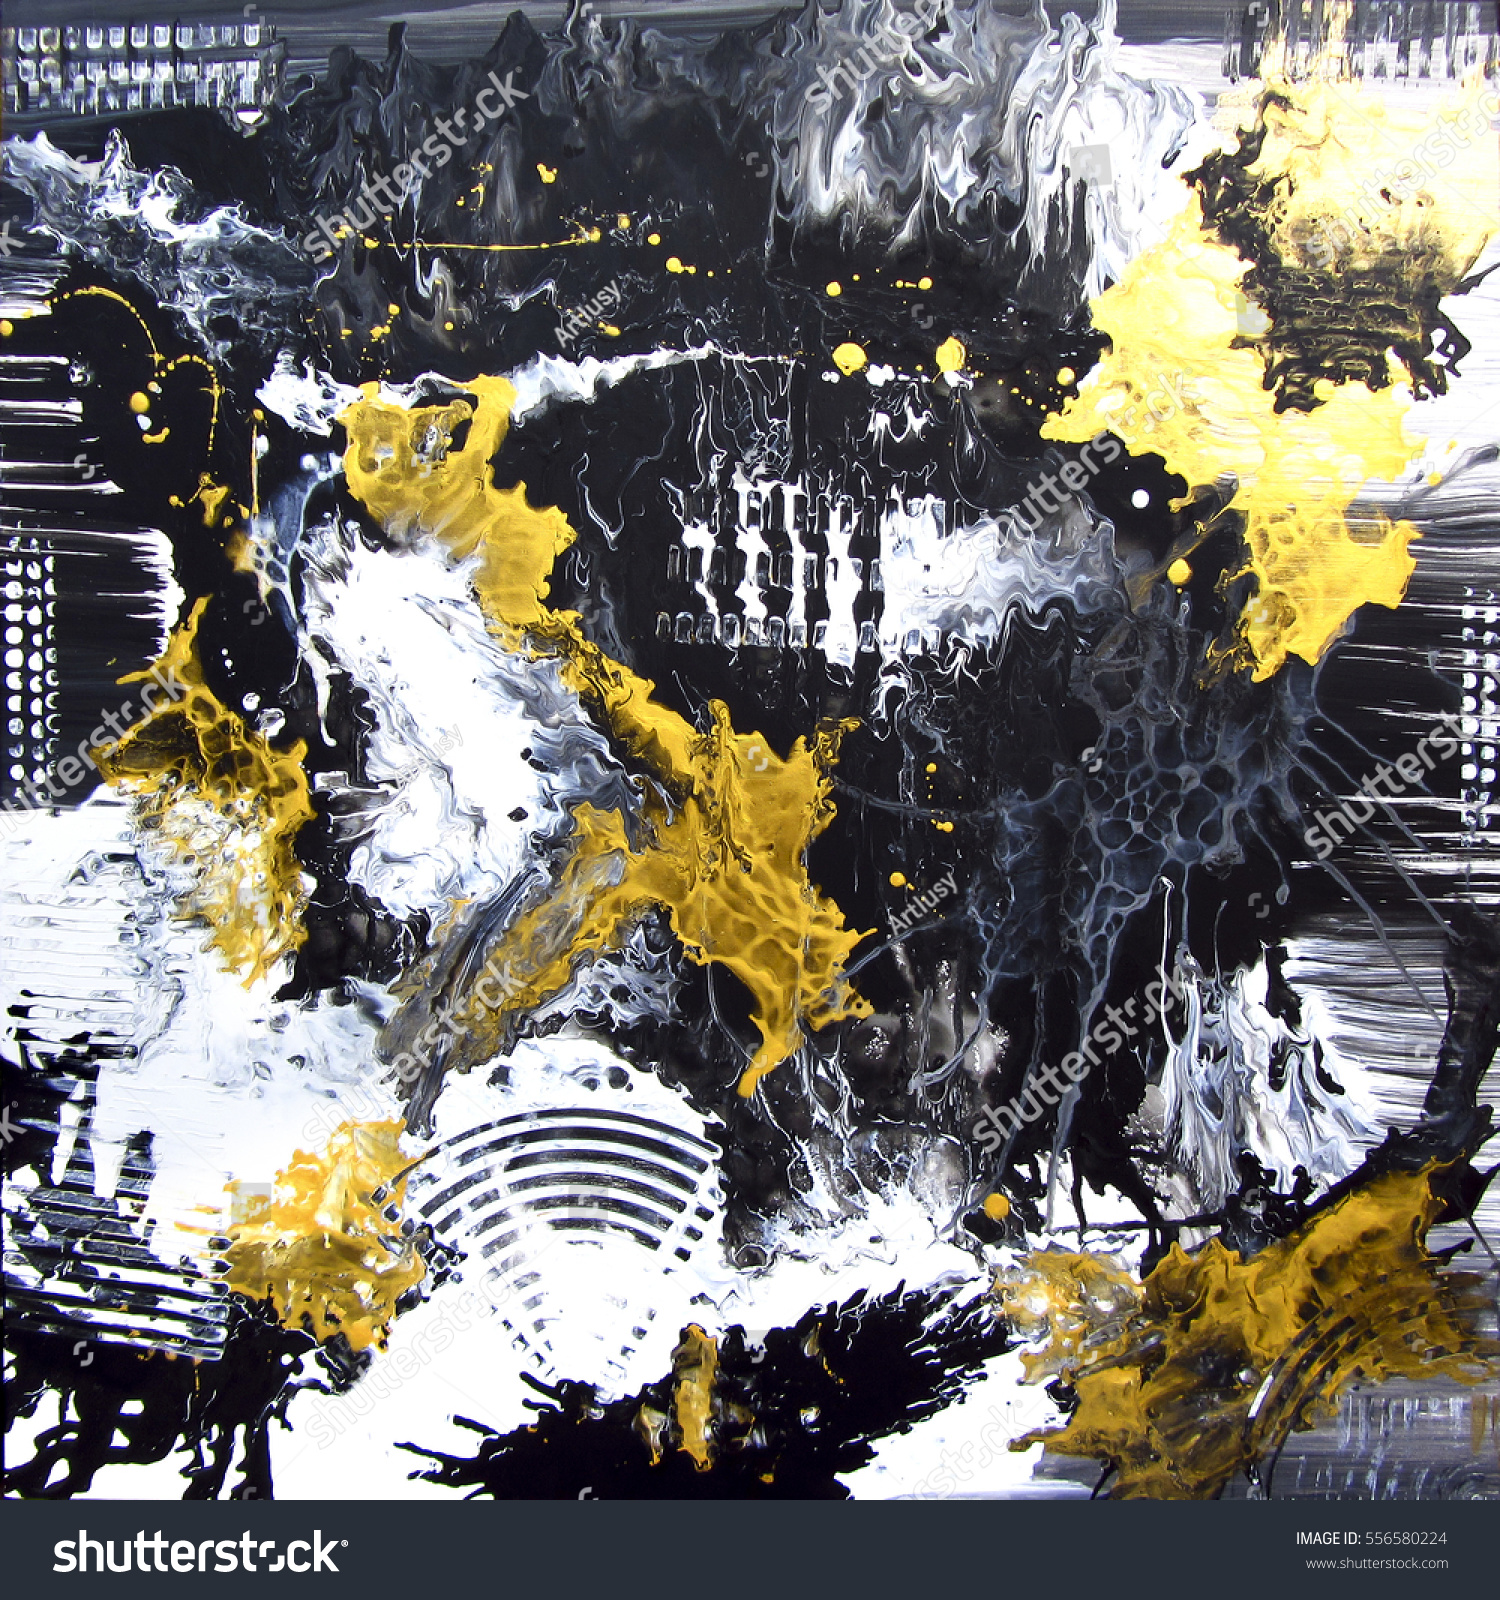 Abstract hand painted black and white with gold background acrylic painting on canvas wallpaper